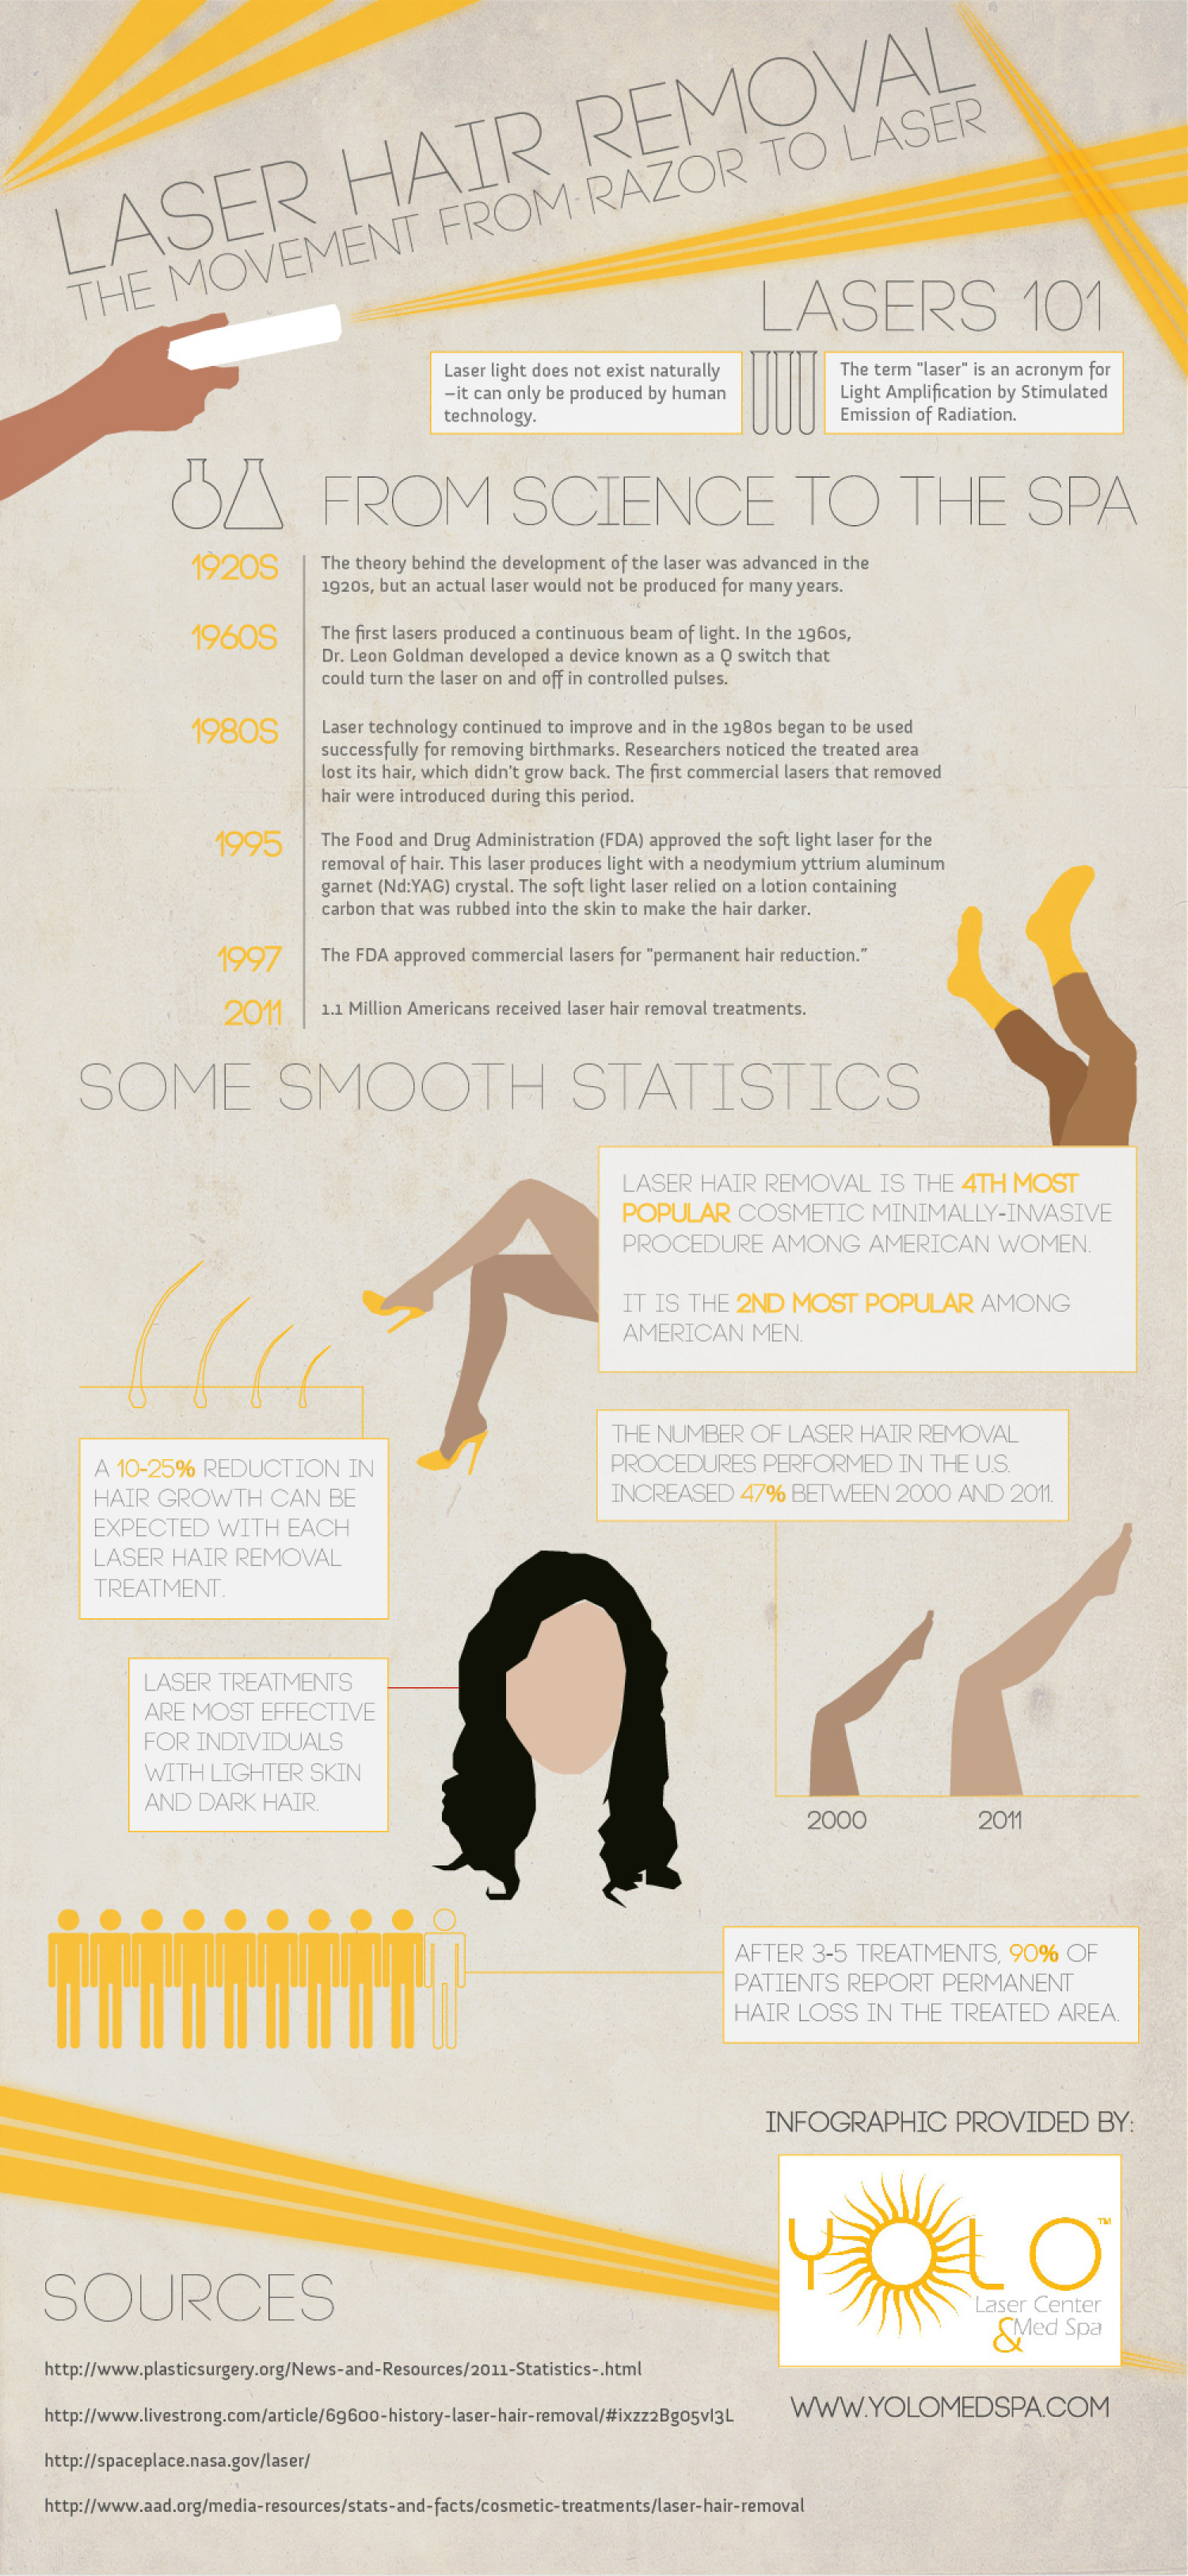 Laser Hair Removal: The Movement from Razor to Laser Infographic